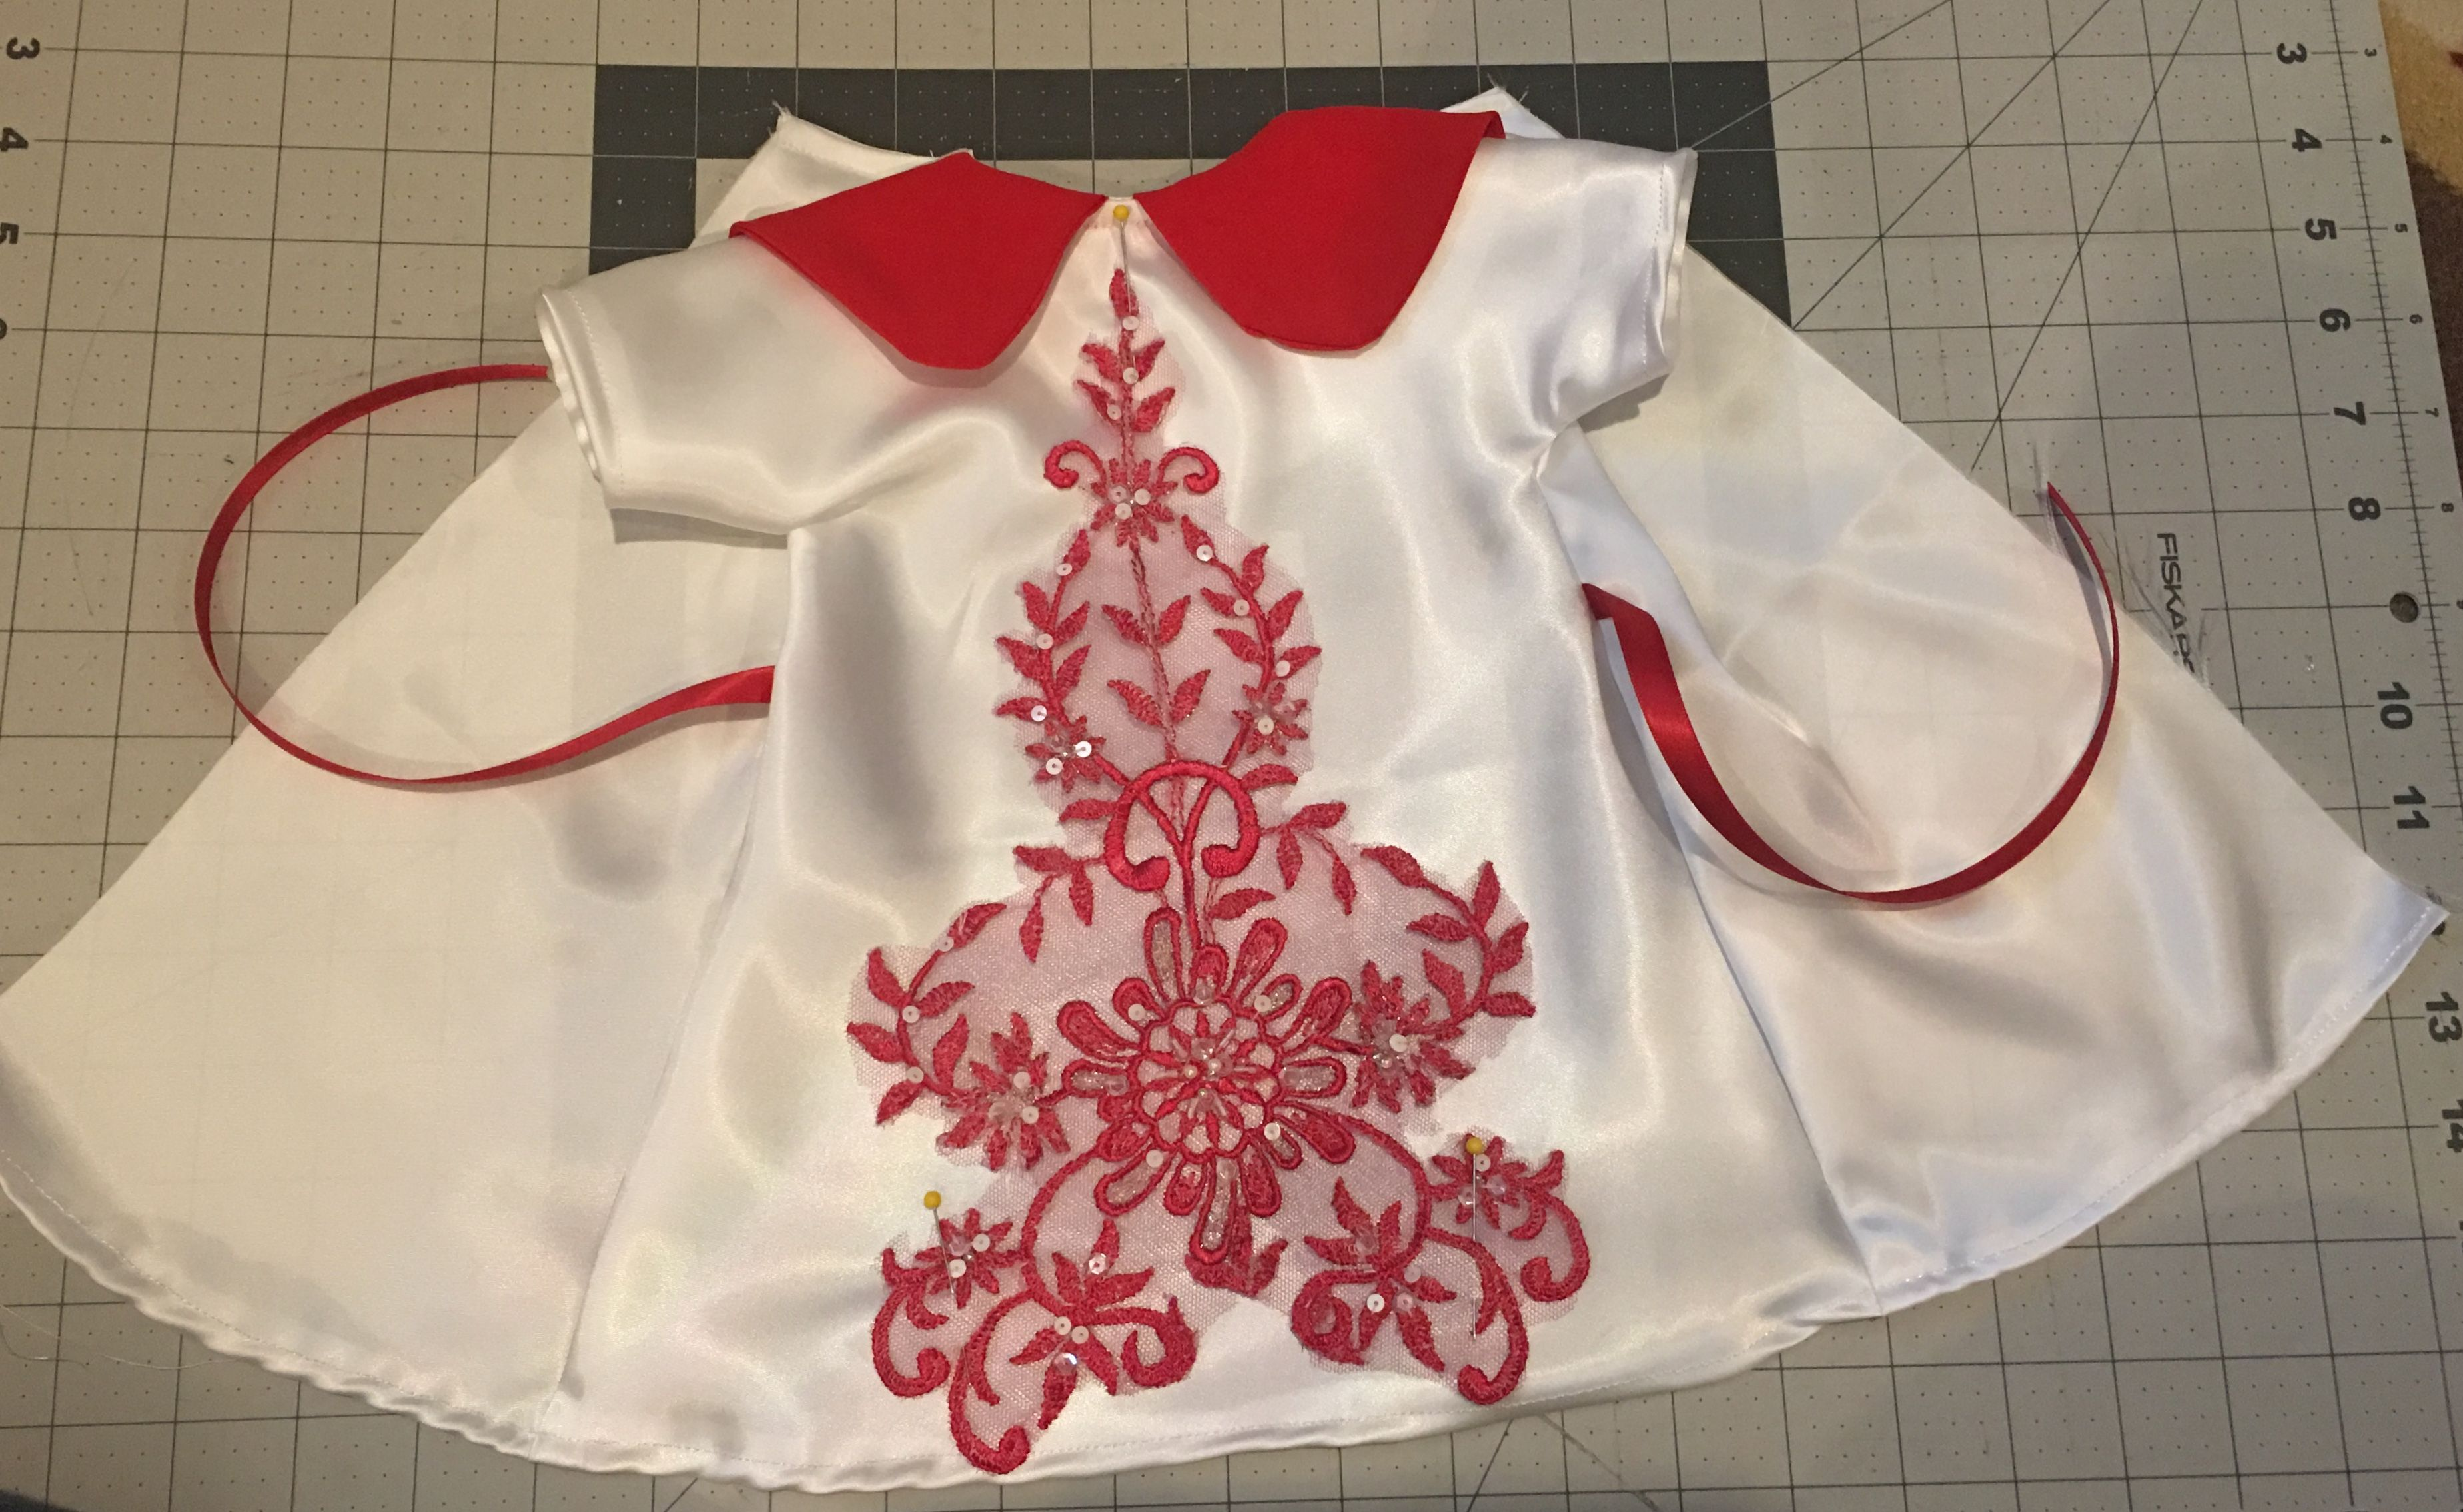 Another red dress i did today angel gowns for babies born